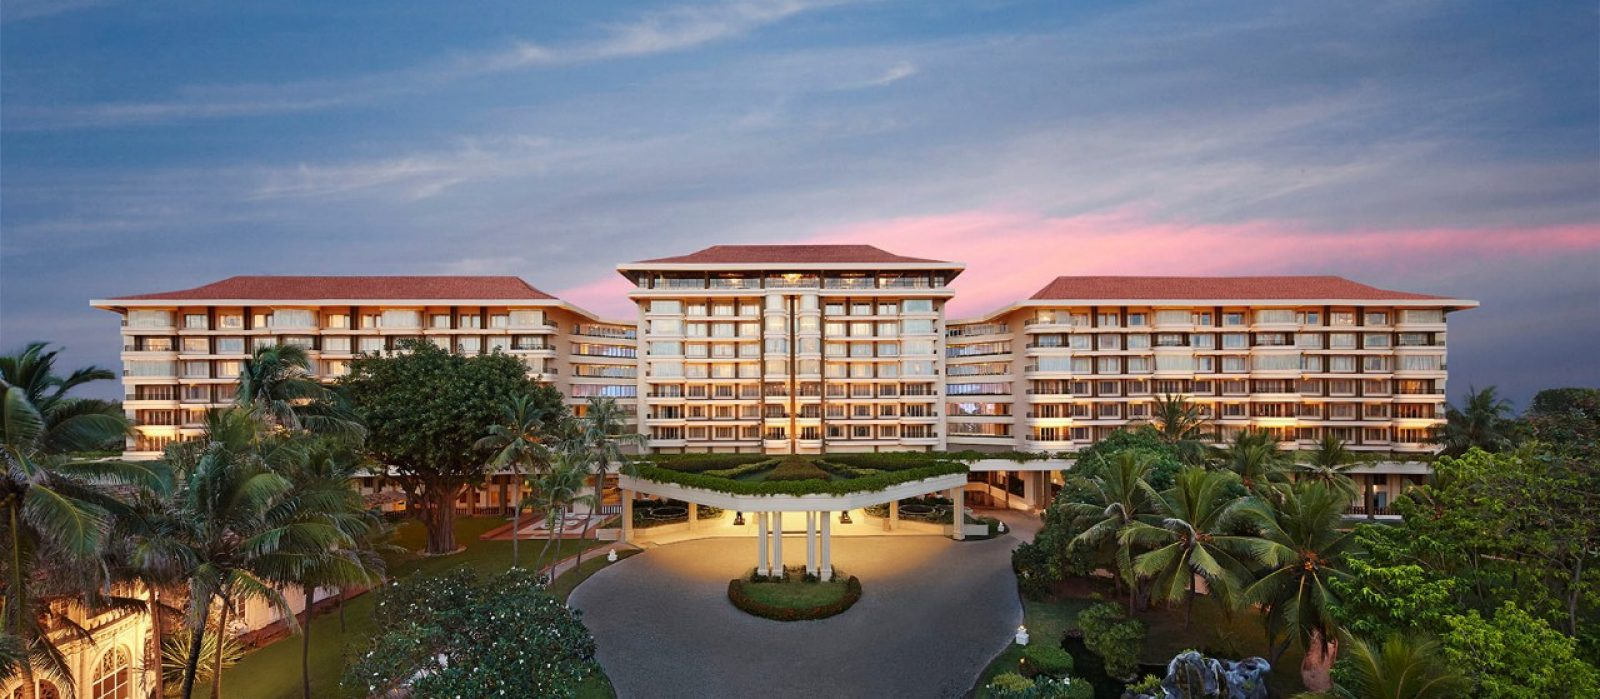 Hotel Taj Samudra official conference venue partners tiikm